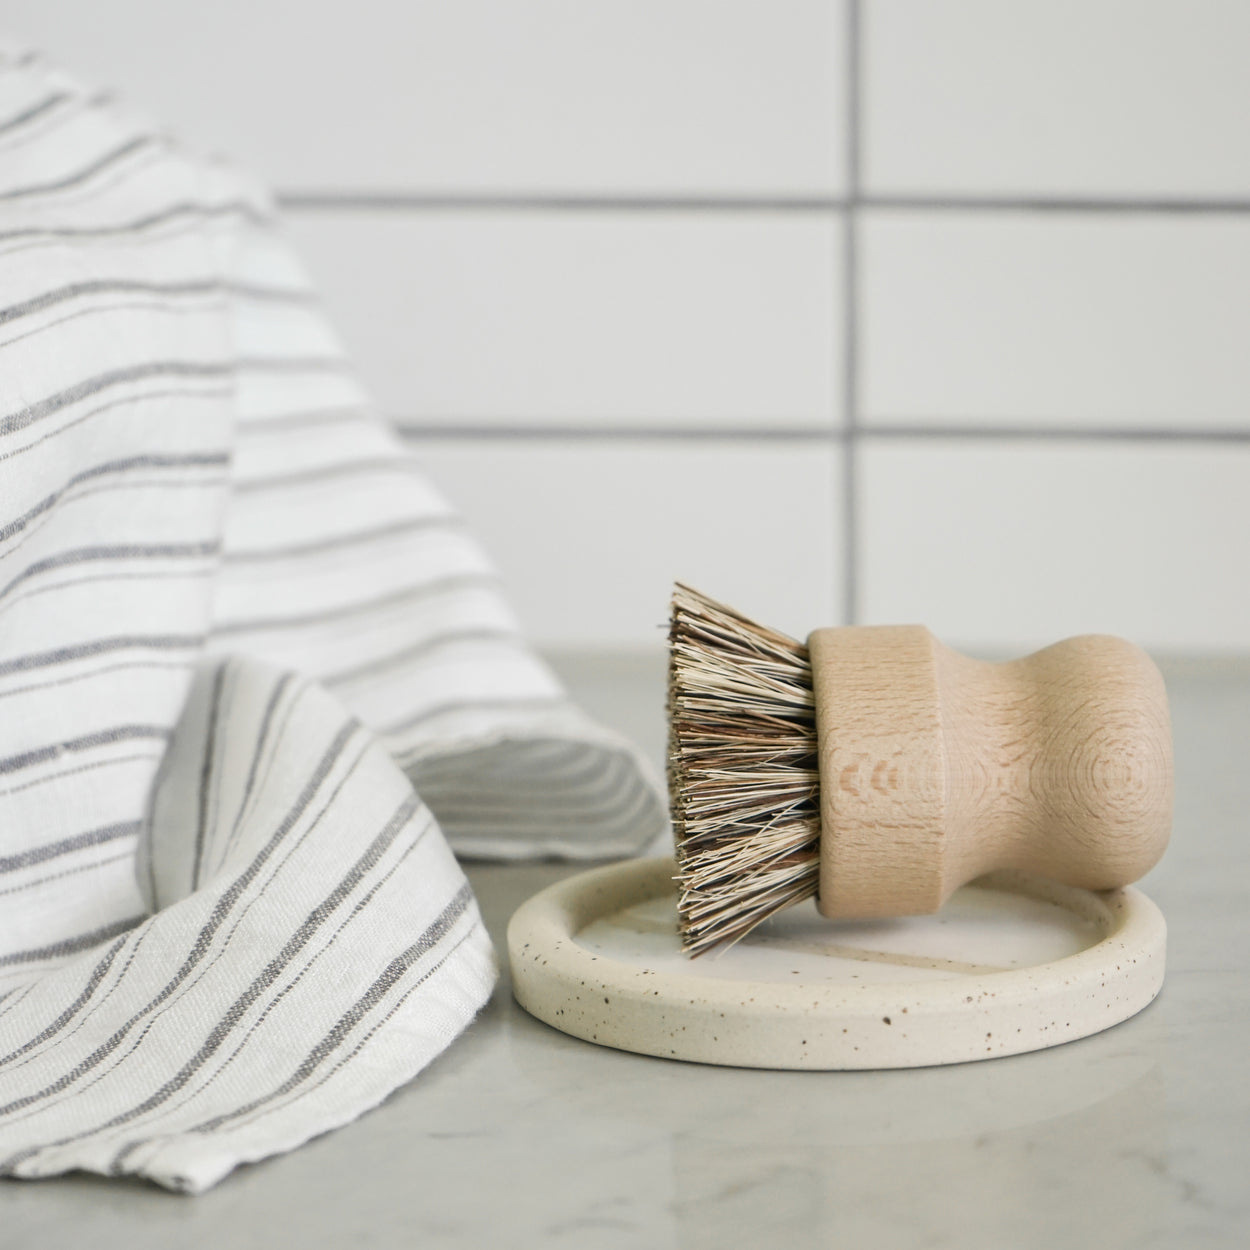 Wooden Scrub Brush with Ceramic Dish